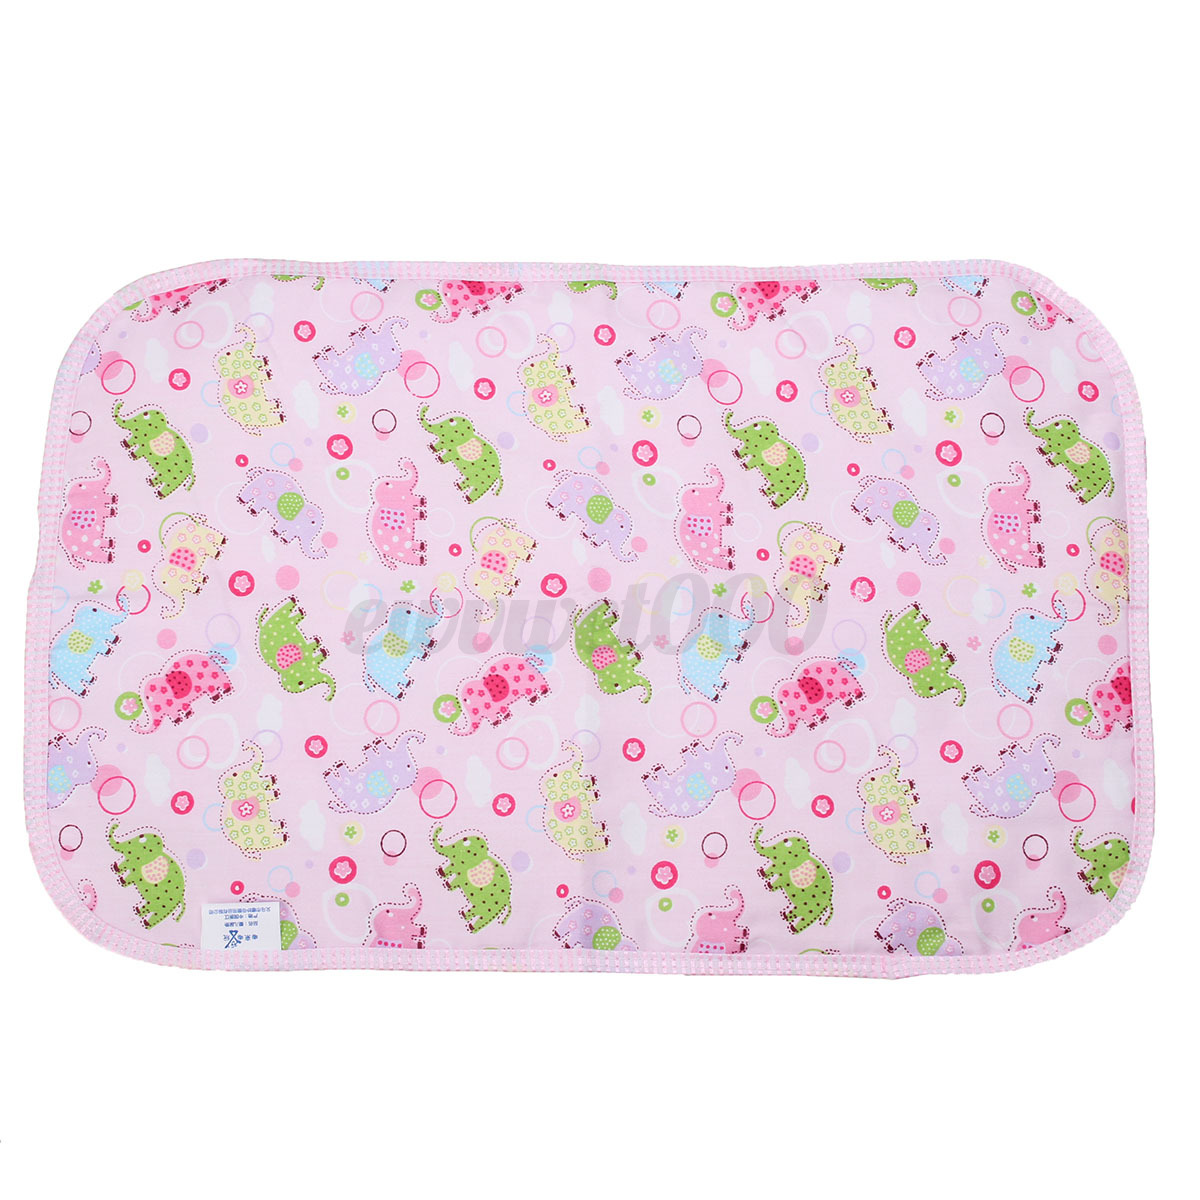 Extra Long Portable Changing Pad Portable Tv Wall Mount Stand Portable Phone Charger Goji Portable Projector Murah: Waterproof Portable Baby Infant Changing Mat Breathable